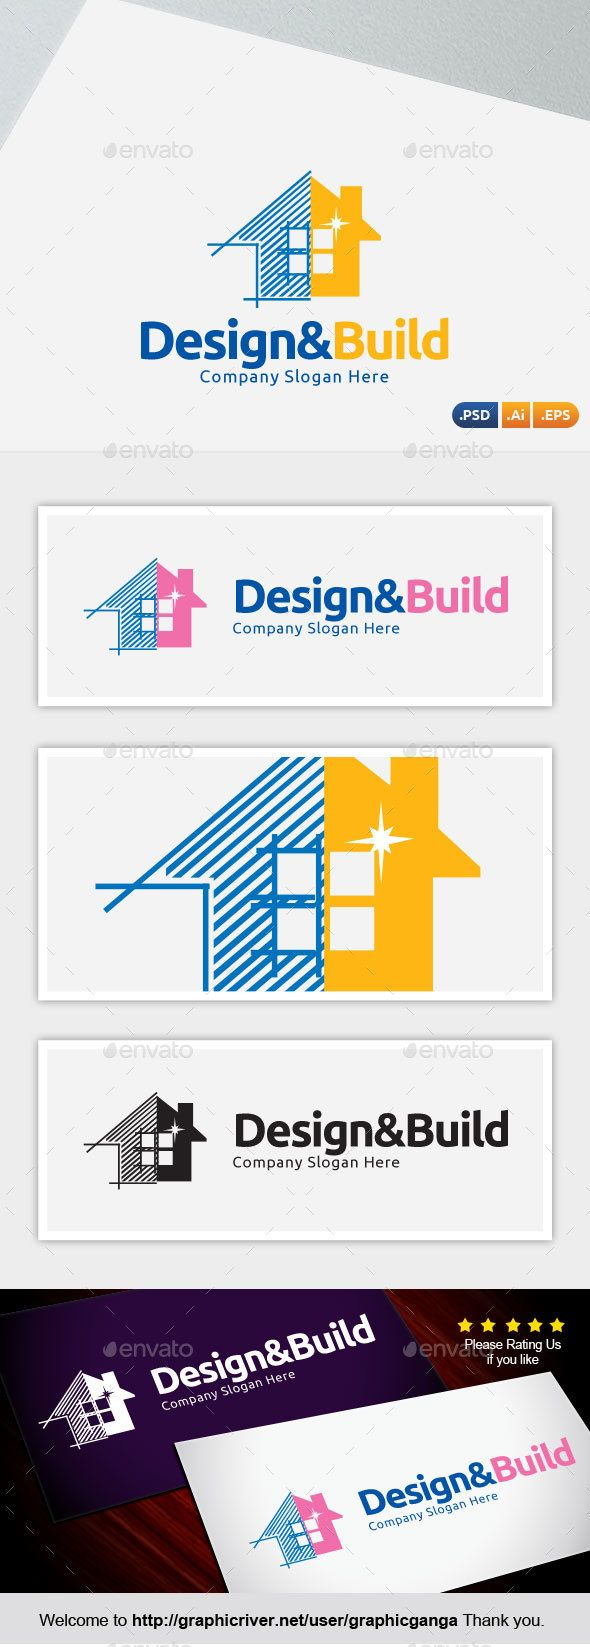 Design & Build – Abstract Logo Templates – Logo Inspiration